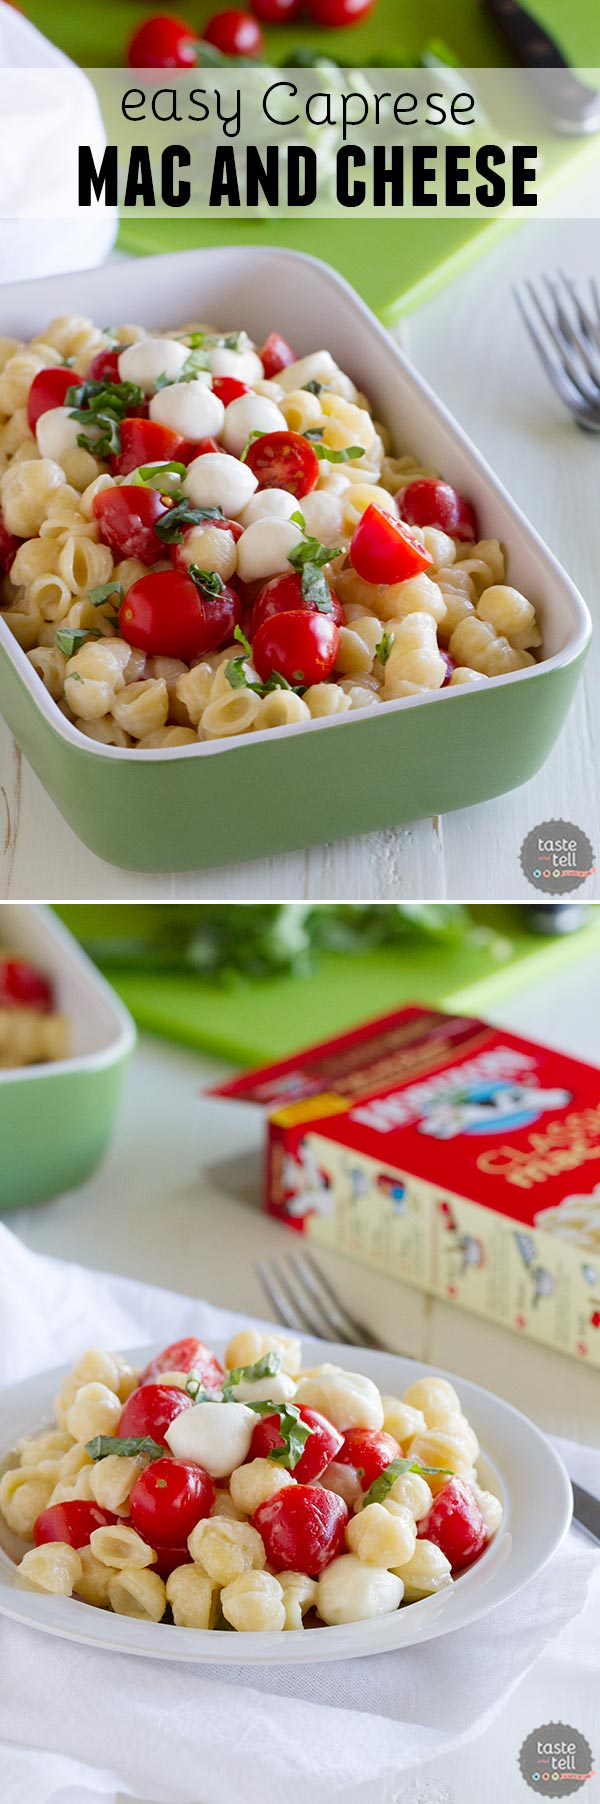 Busy day?  Take it easy with this Easy Caprese Mac and Cheese.  Jazz up your mac and cheese with tomatoes, mozzarella and basil in this Caprese inspired macaroni and cheese.